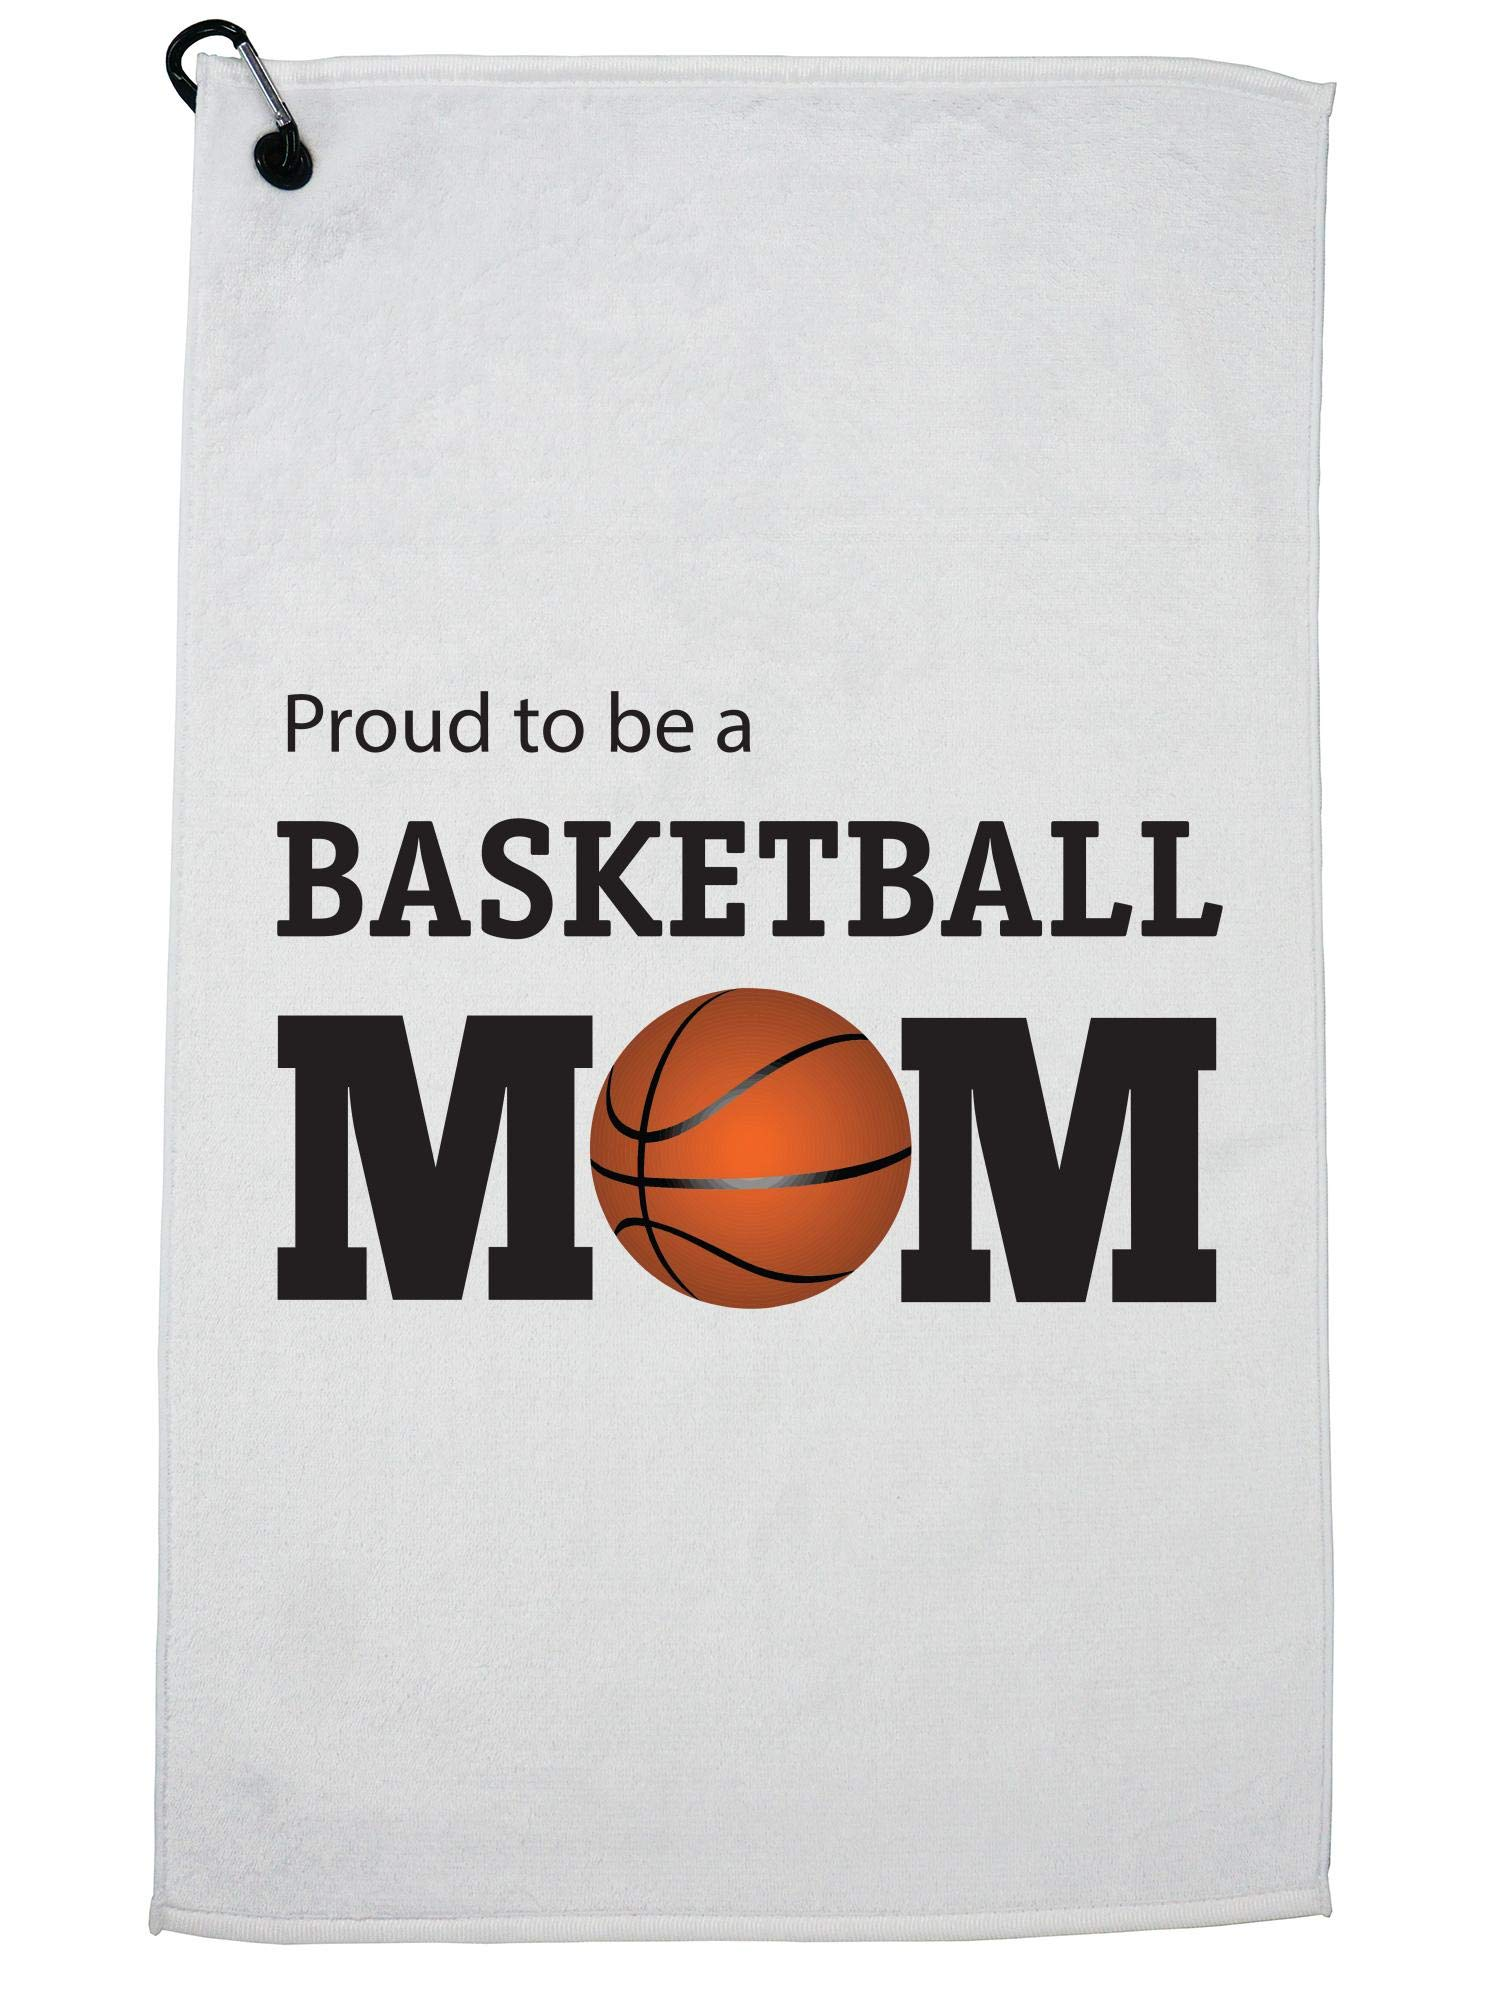 Hollywood Thread Proud to be a Basketball Mom Graphic Golf Towel with Carabiner Clip by Hollywood Thread